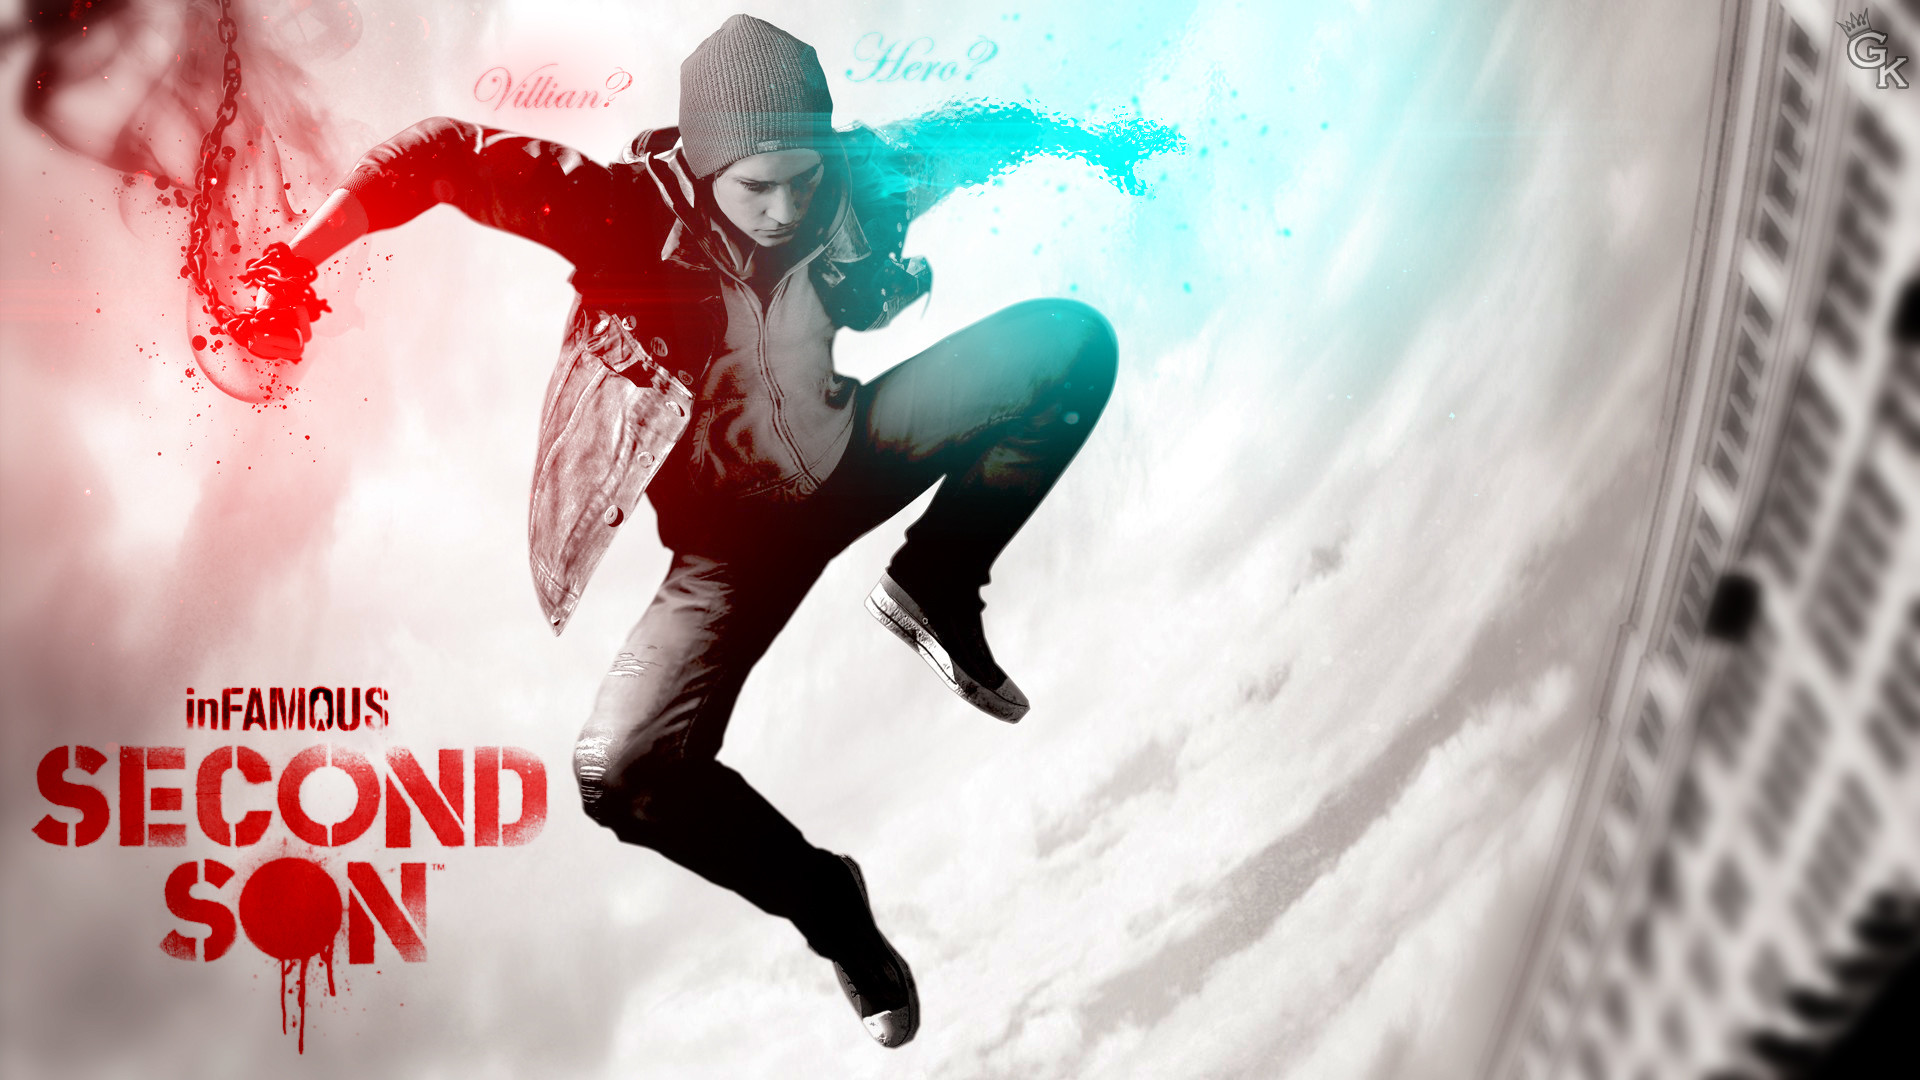 1920x1080 Backgrounds In High Quality: Infamous Second Son by Minna Boynton, 08.08.13